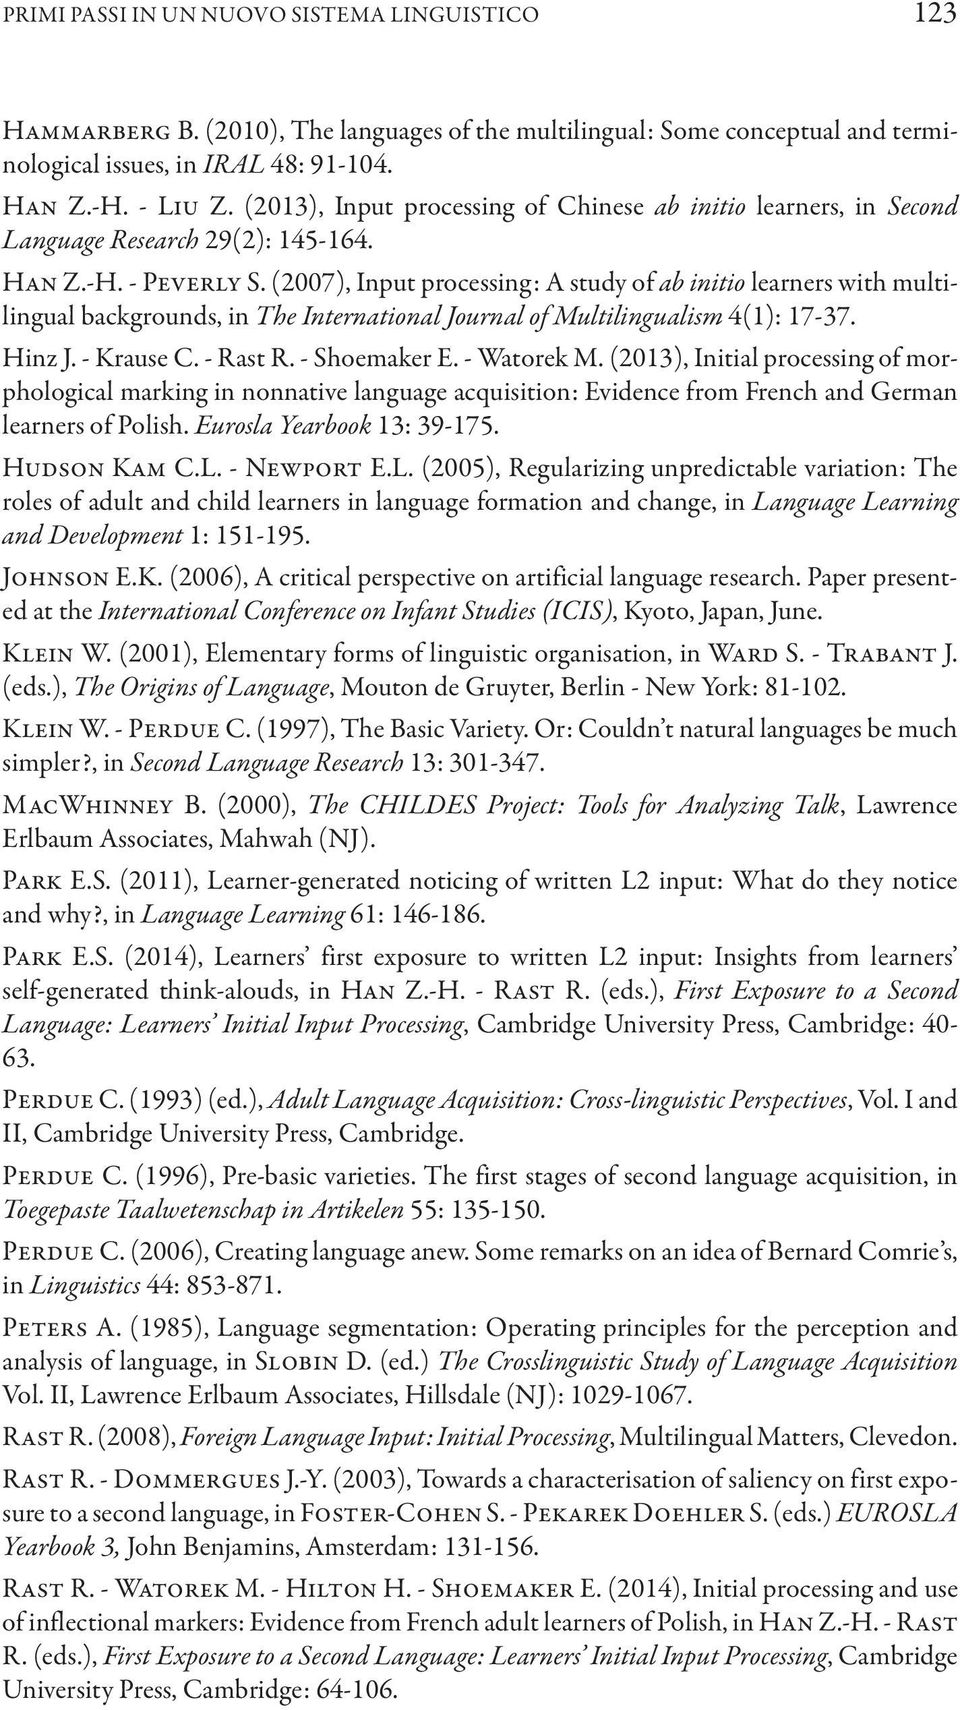 (2007), Input processing: A study of ab initio learners with multilingual backgrounds, in The International Journal of Multilingualism 4(1): 17-37. Hinz J. - Krause C. - Rast R. - Shoemaker E.